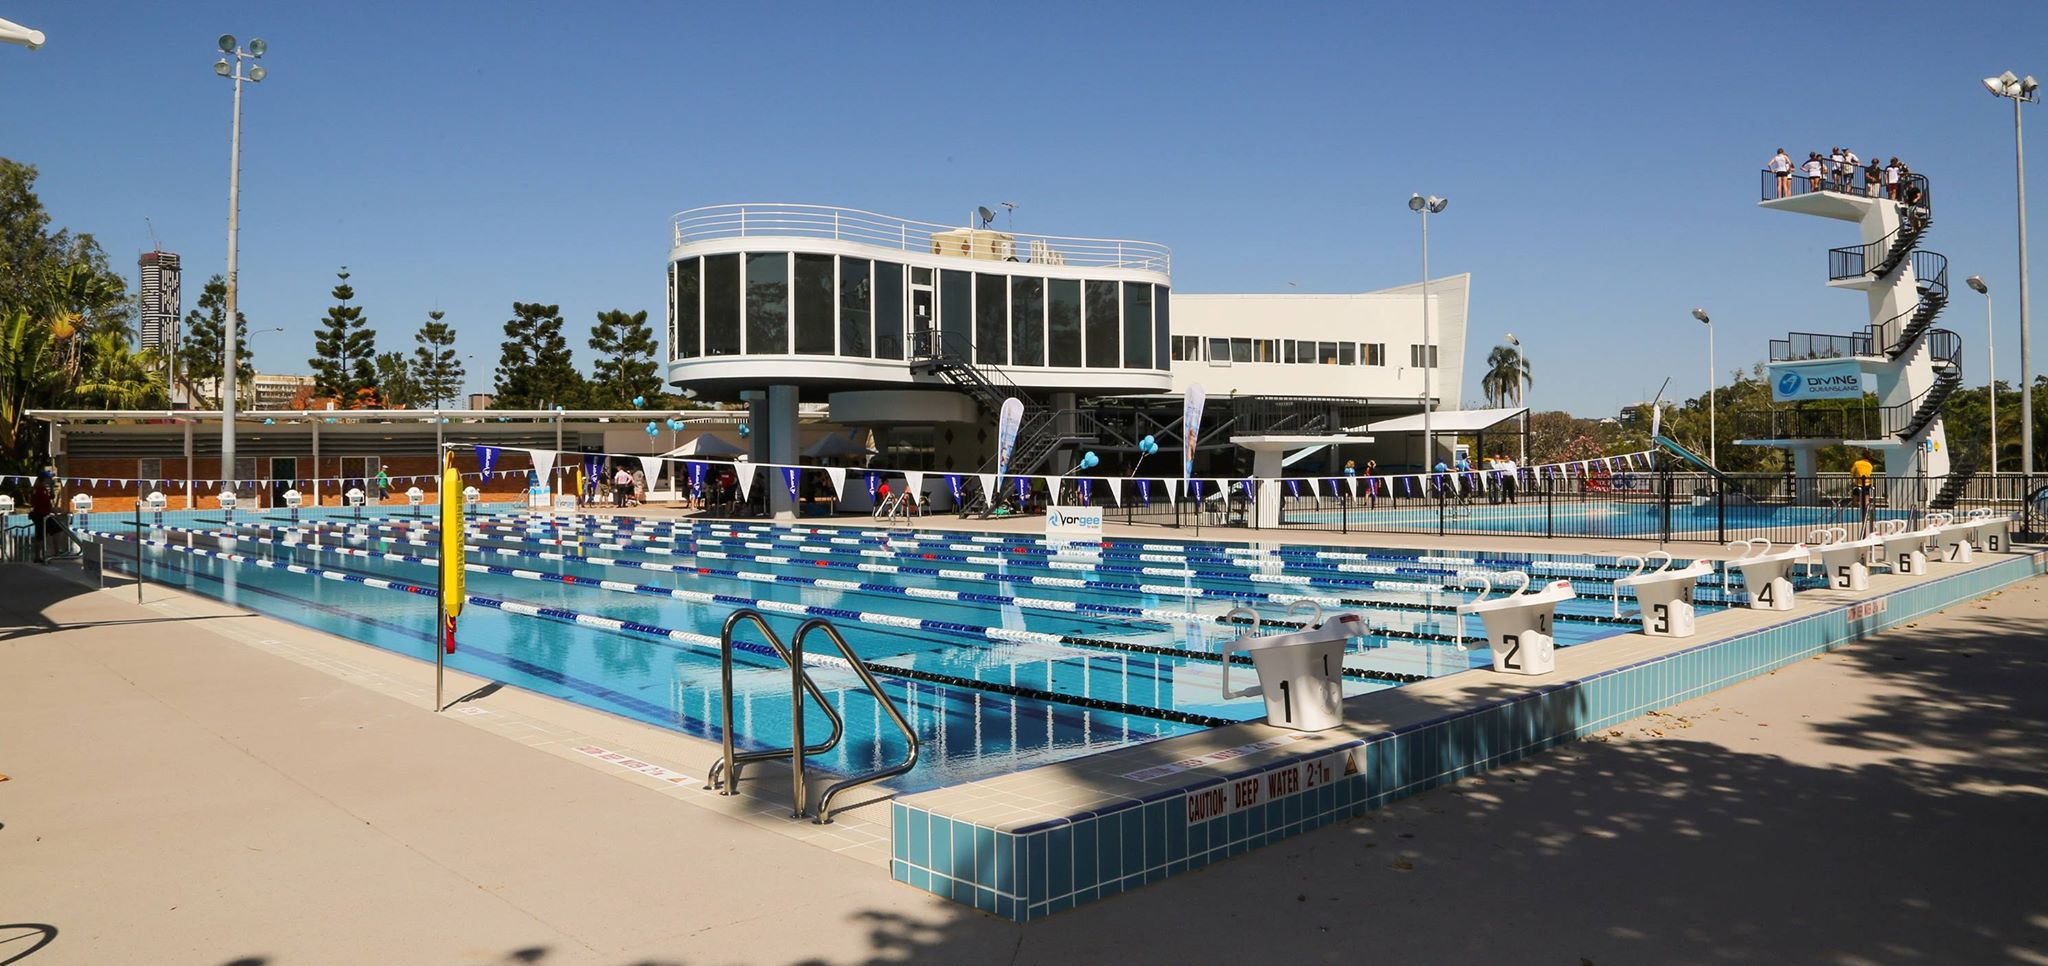 Really Cool Swimming Pools 8 great swimming pools in brisbane - brisbane